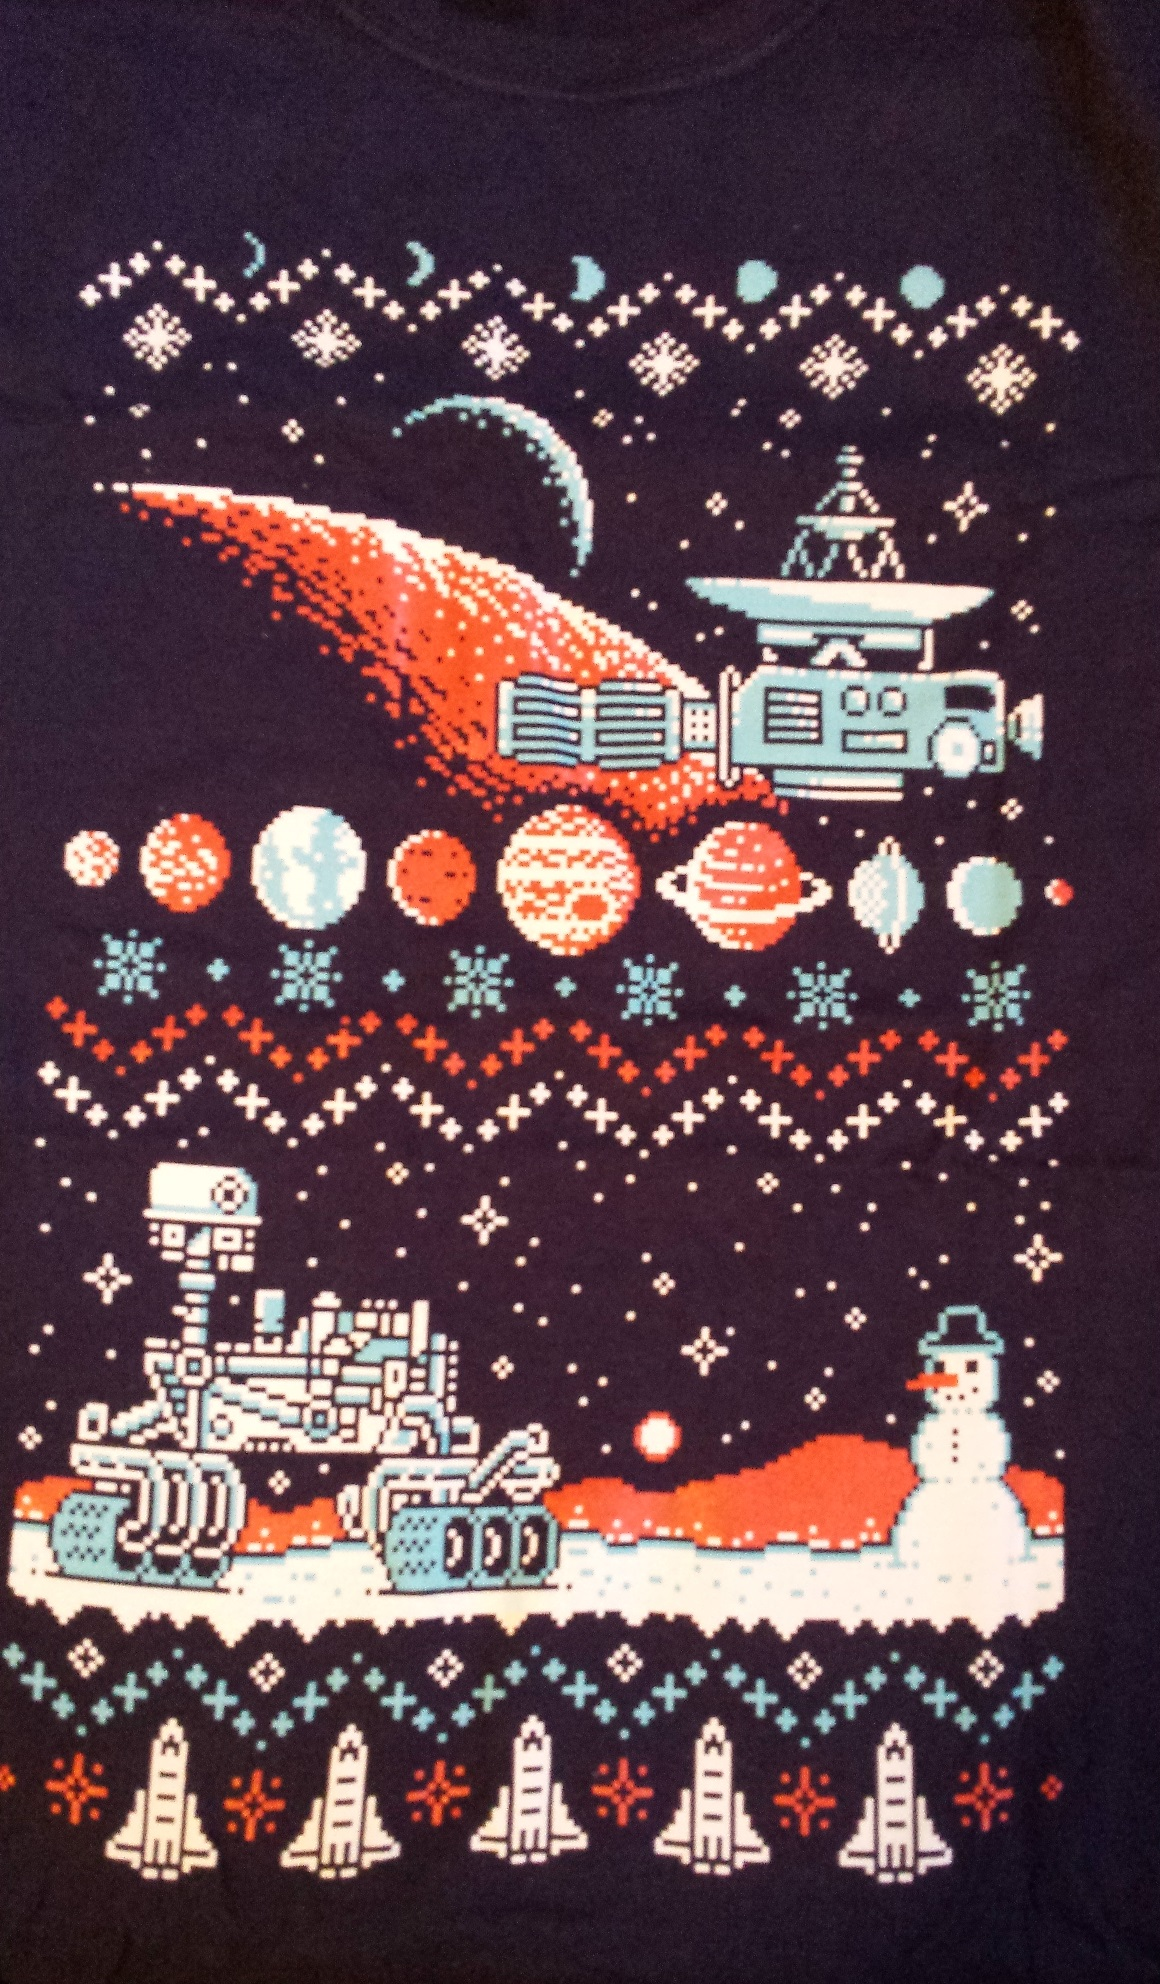 Ugly christmas shirt, loot crate, loot crate review, december loot crate, discovery loot crate